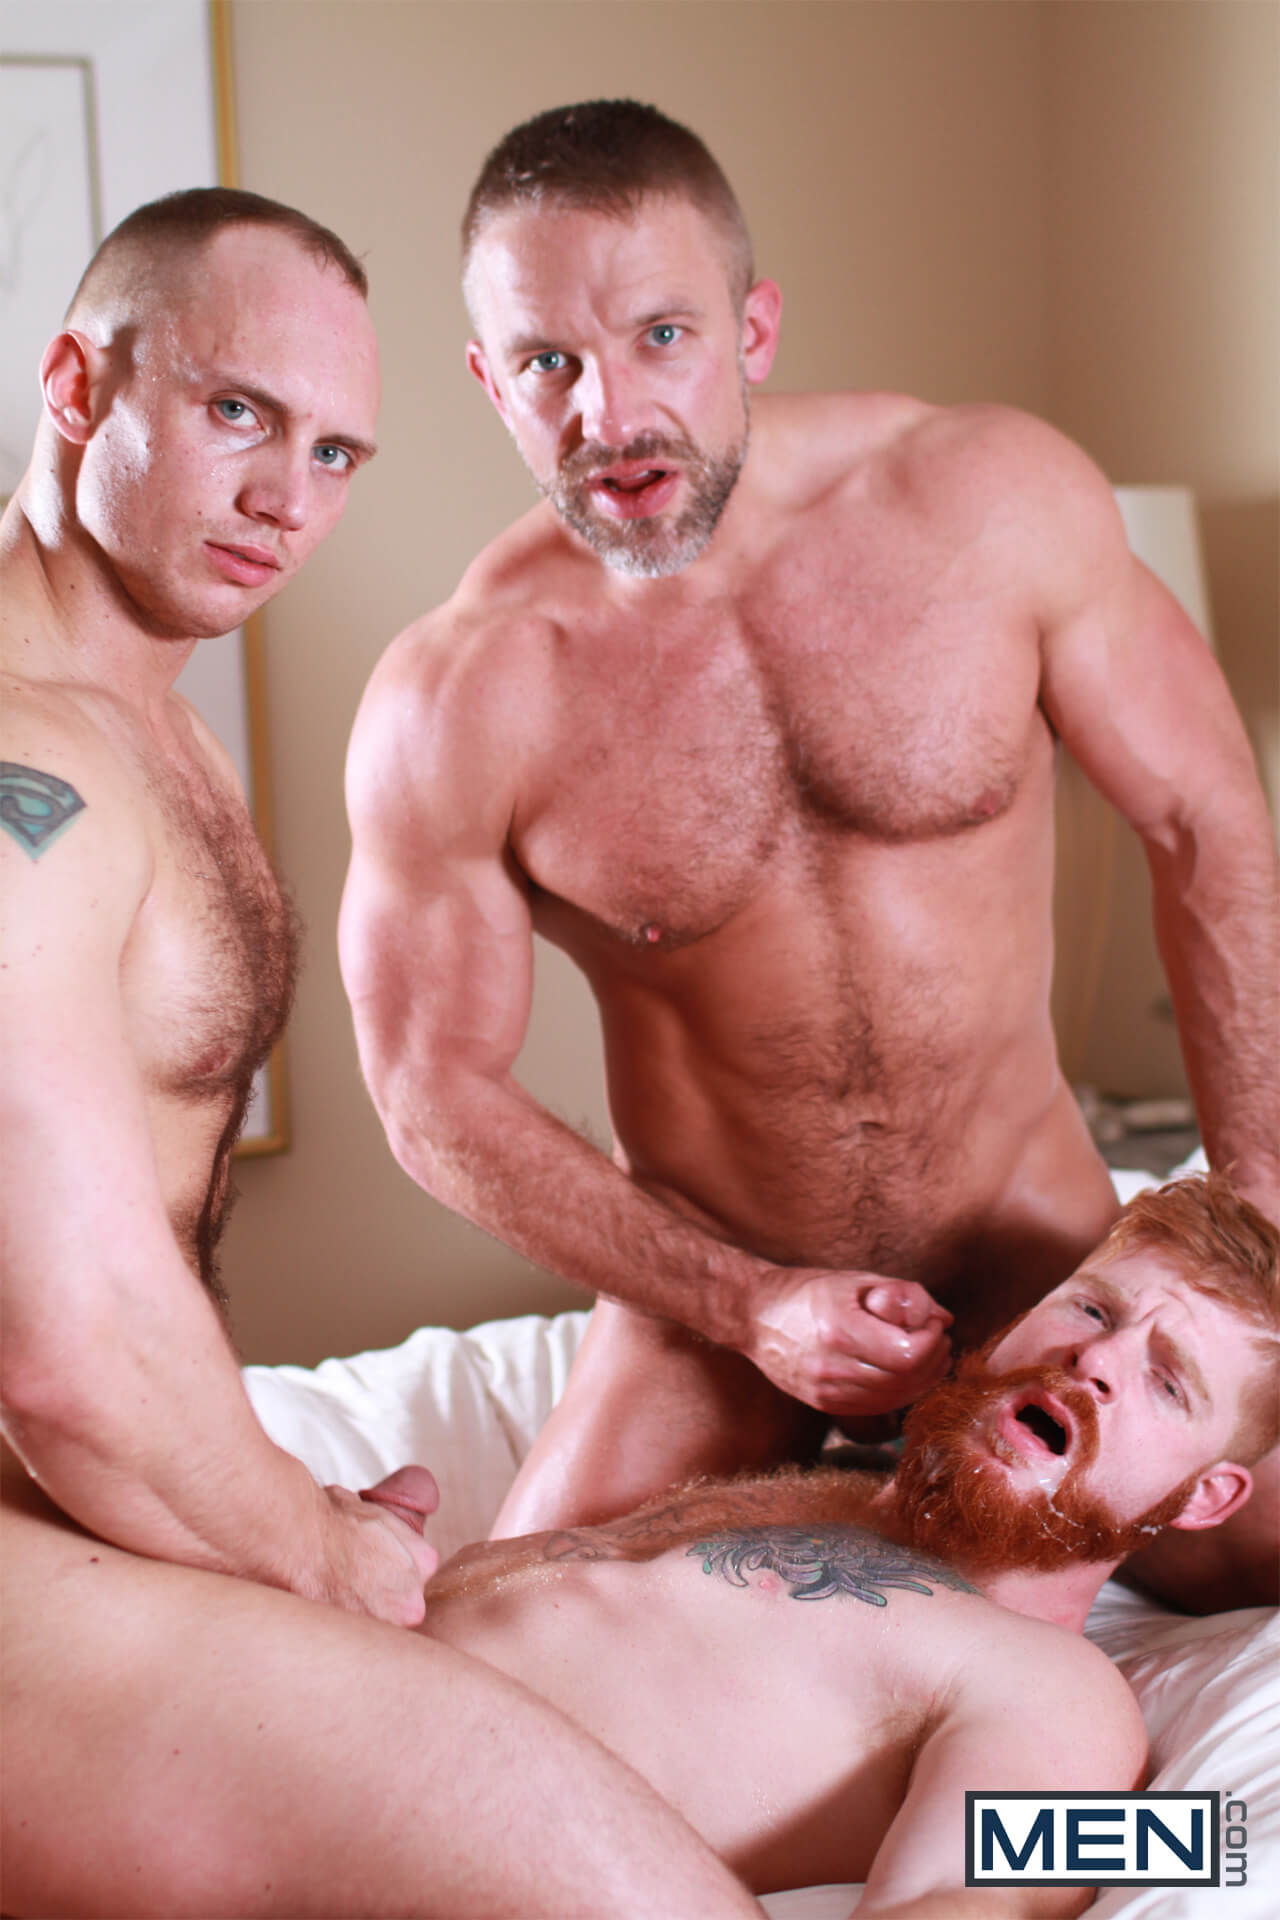 men drill my hole pretty boy part 3 bennett anthony dirk caber john magnum gay porn blog image 6